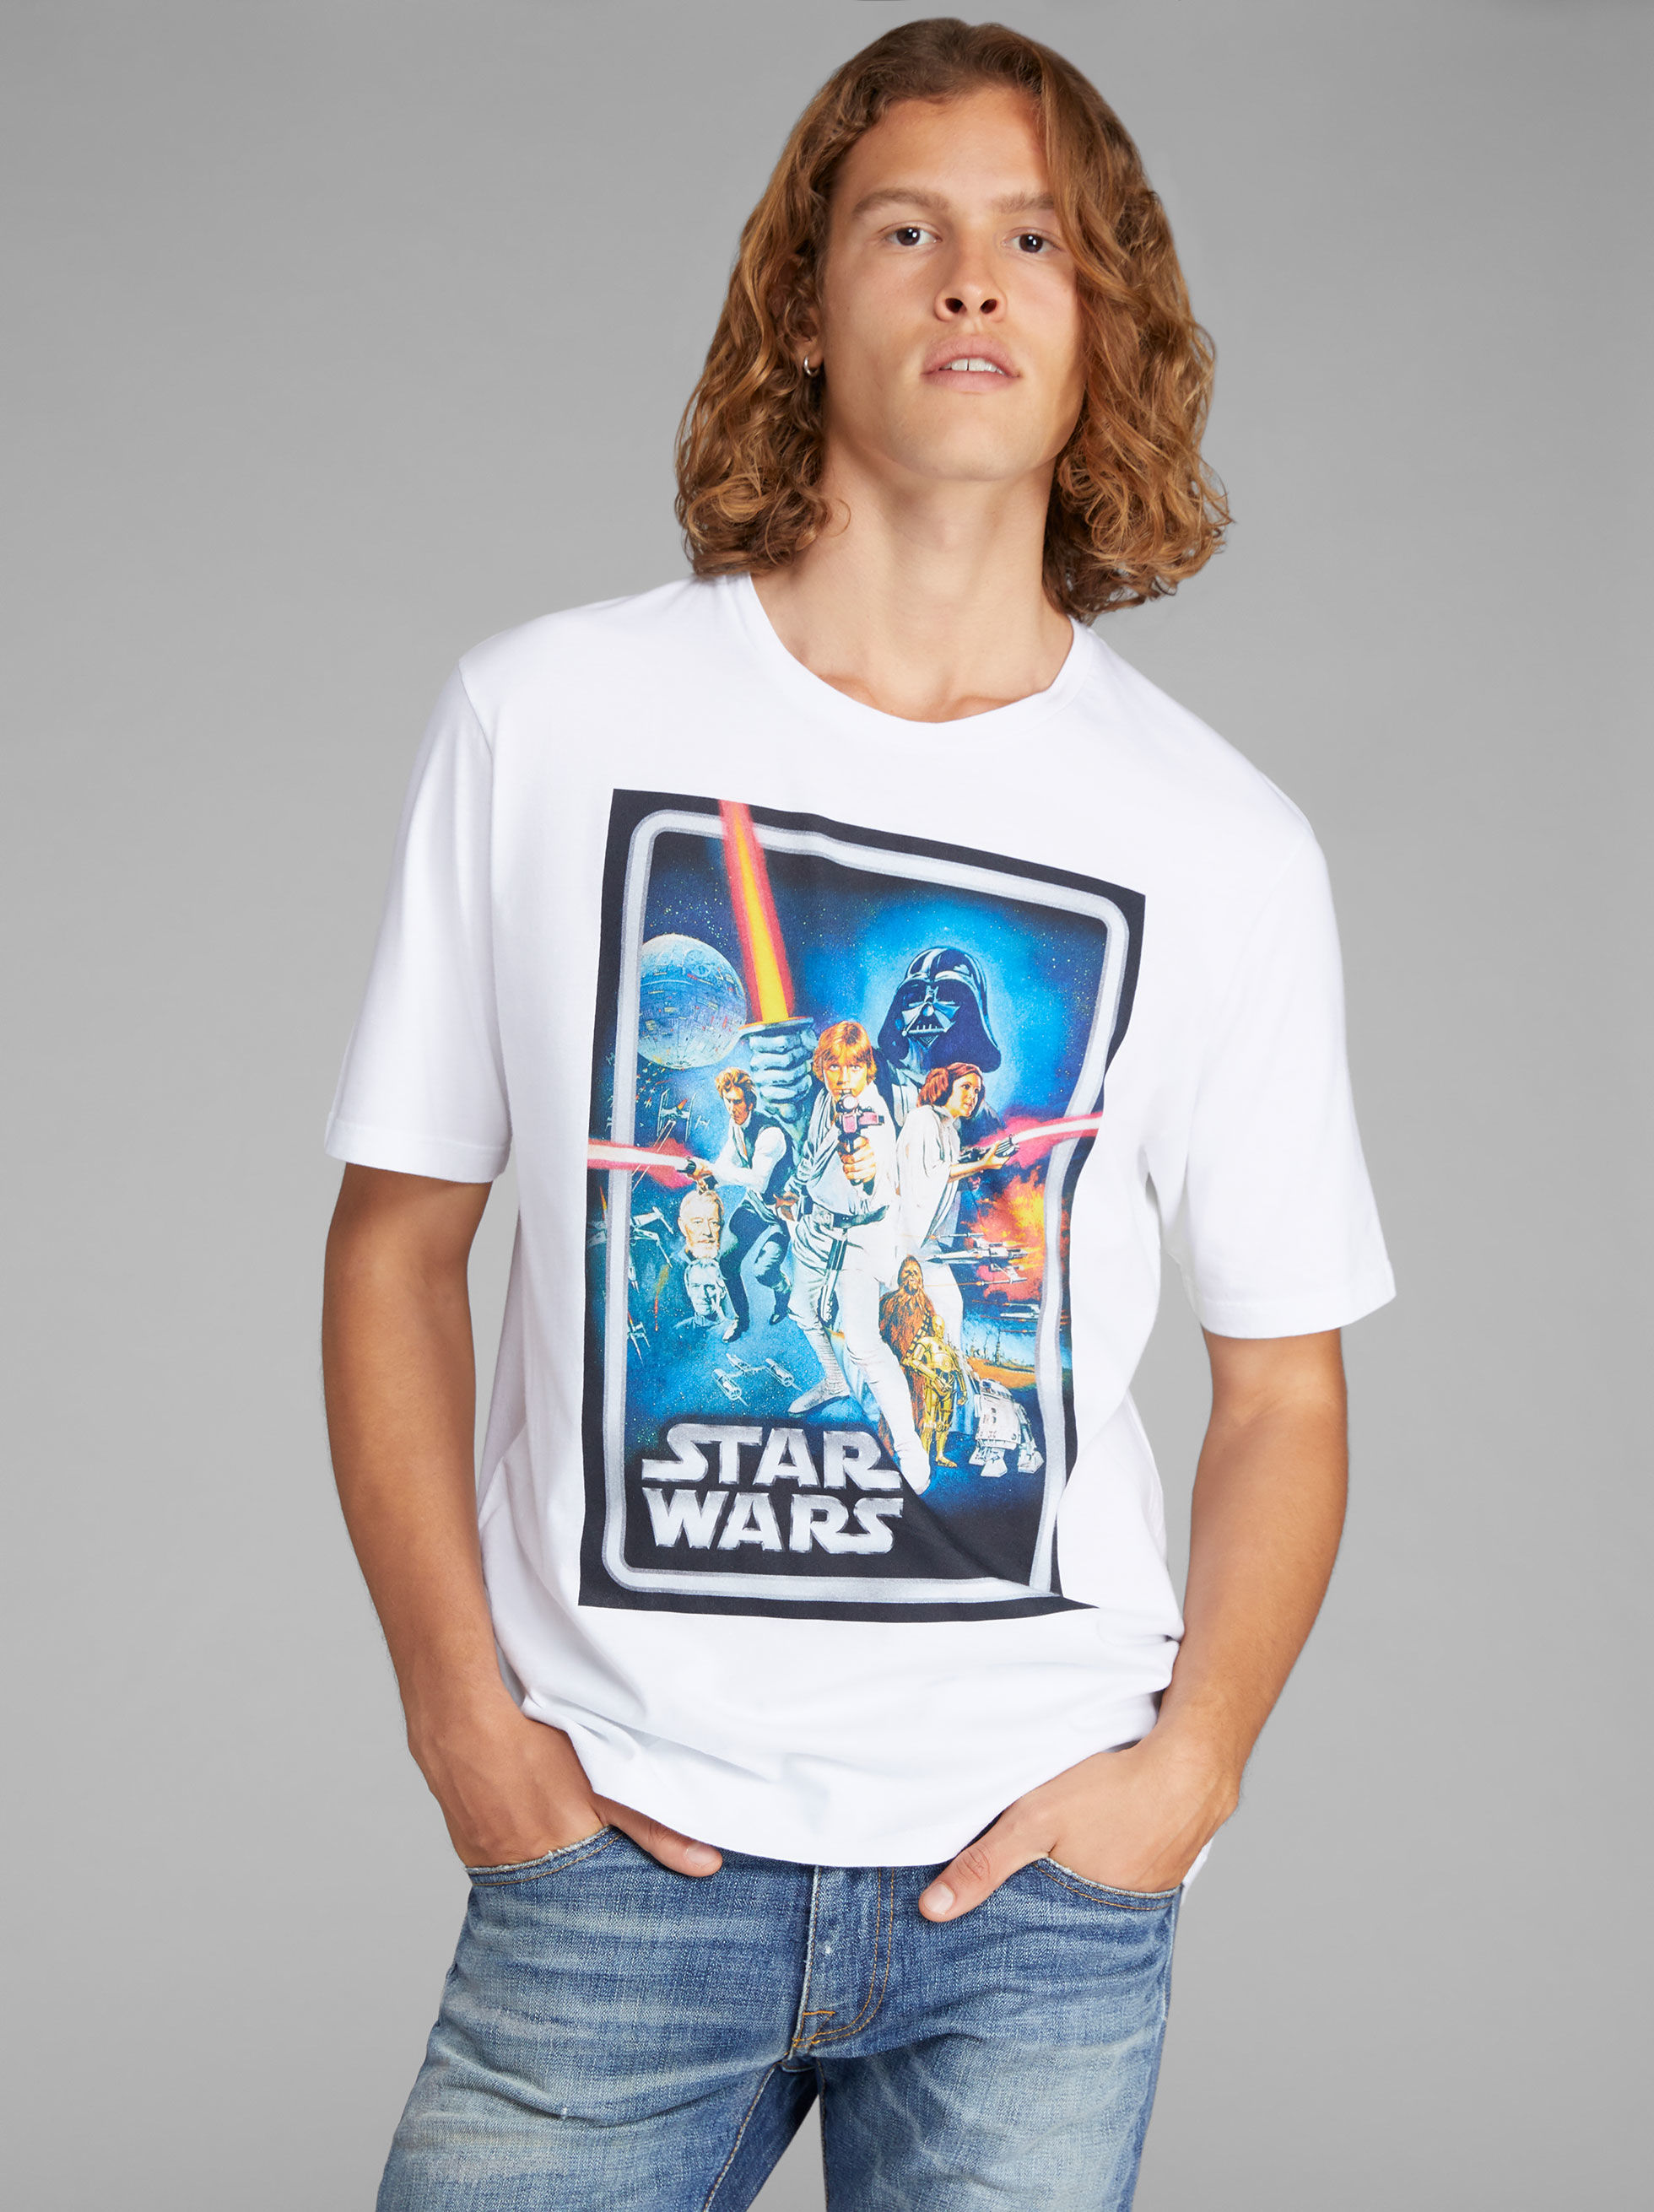 ETRO X STAR WARS T-SHIRT